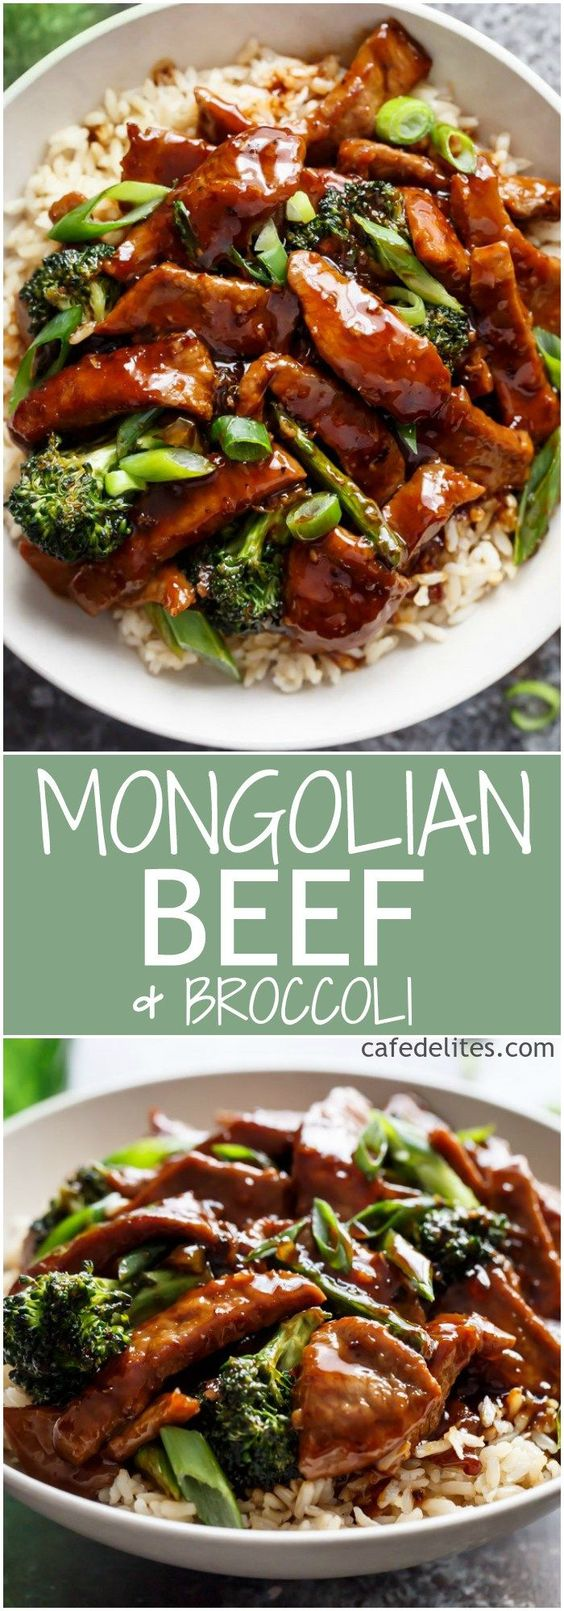 A Mongolian Beef And Broccoli like traditional take-out? With only HALF the oil needed compared to other recipes, this Mongolian Beef is even better! | http://cafedelites.com